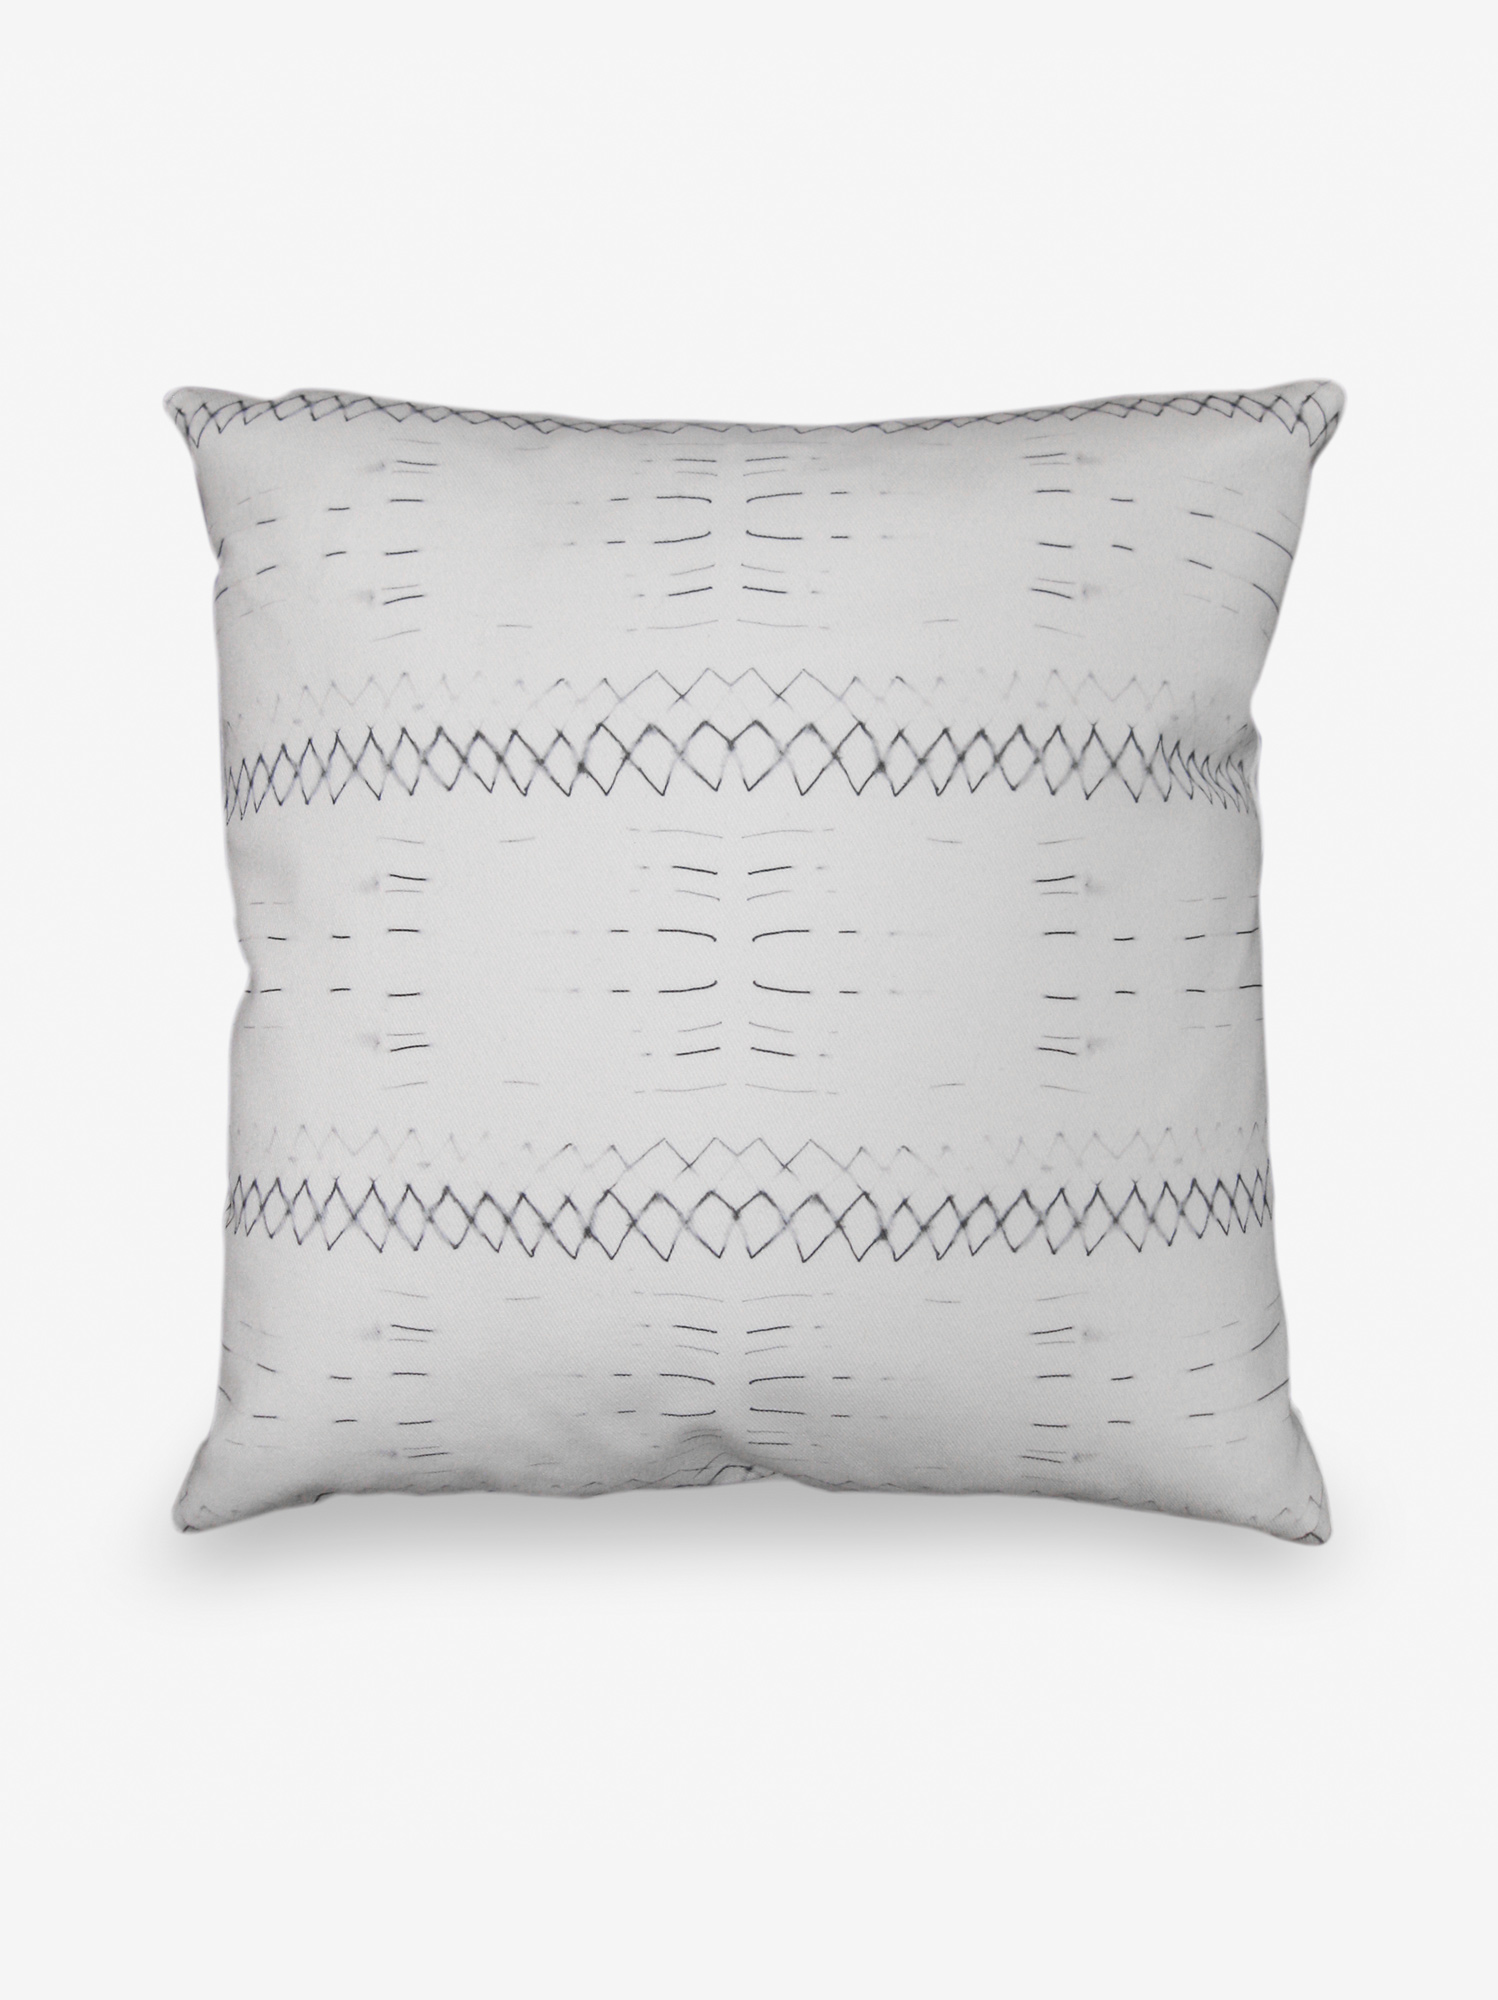 Native Stripe Black White Pillow Eskayel